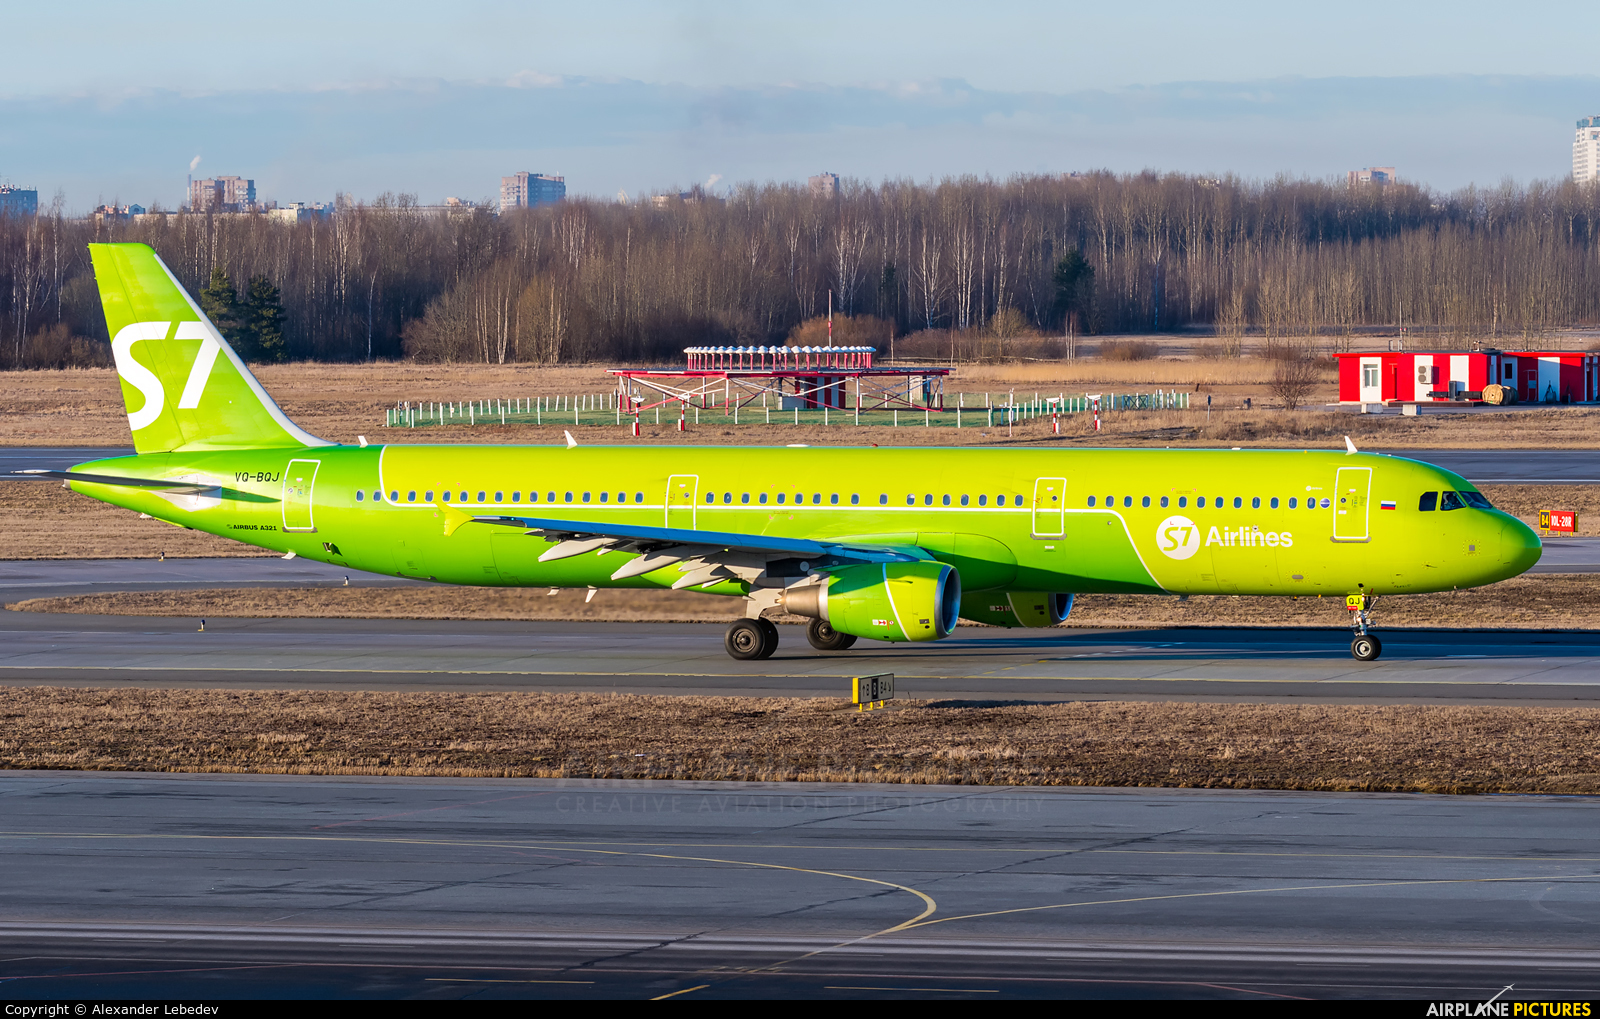 S7 Airlines VQ-BQJ aircraft at St. Petersburg - Pulkovo